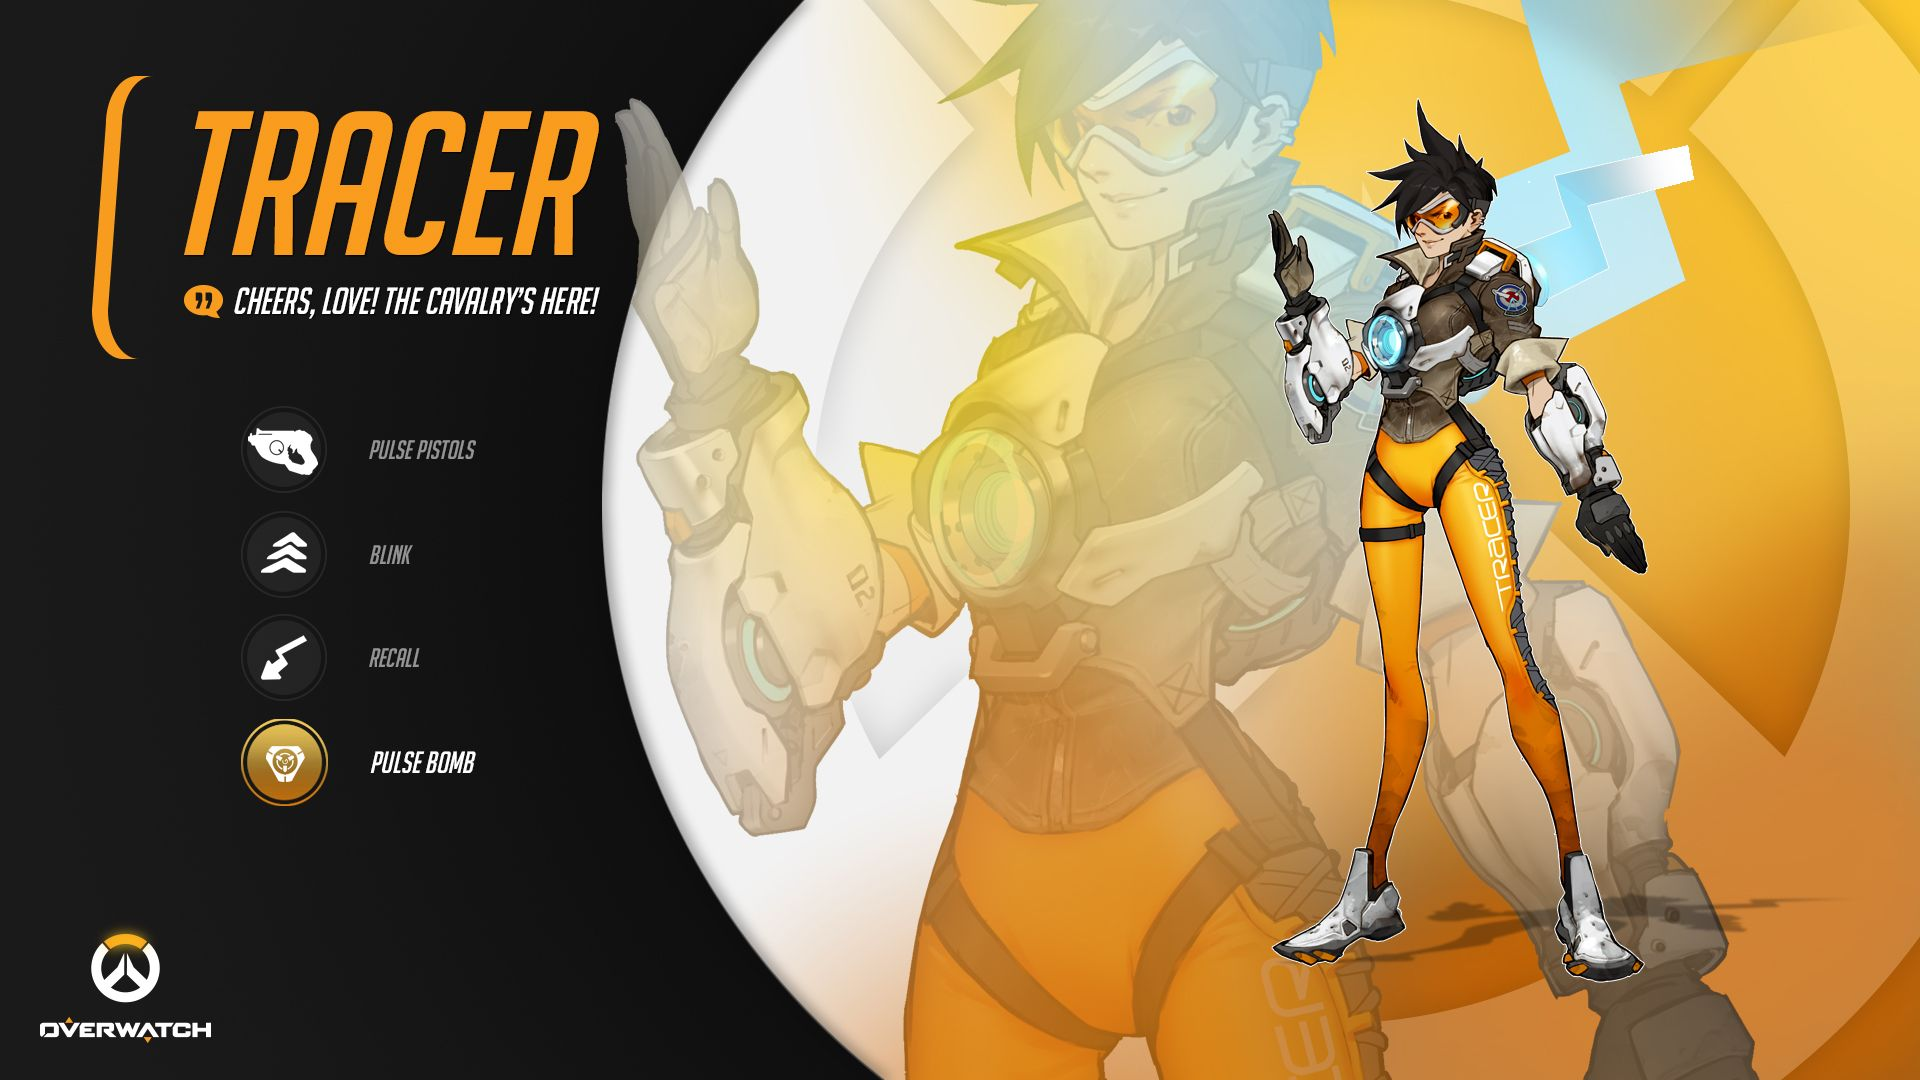 Overwatch wallpapers | Overwatch, Overwatch wallpapers and Wallpaper